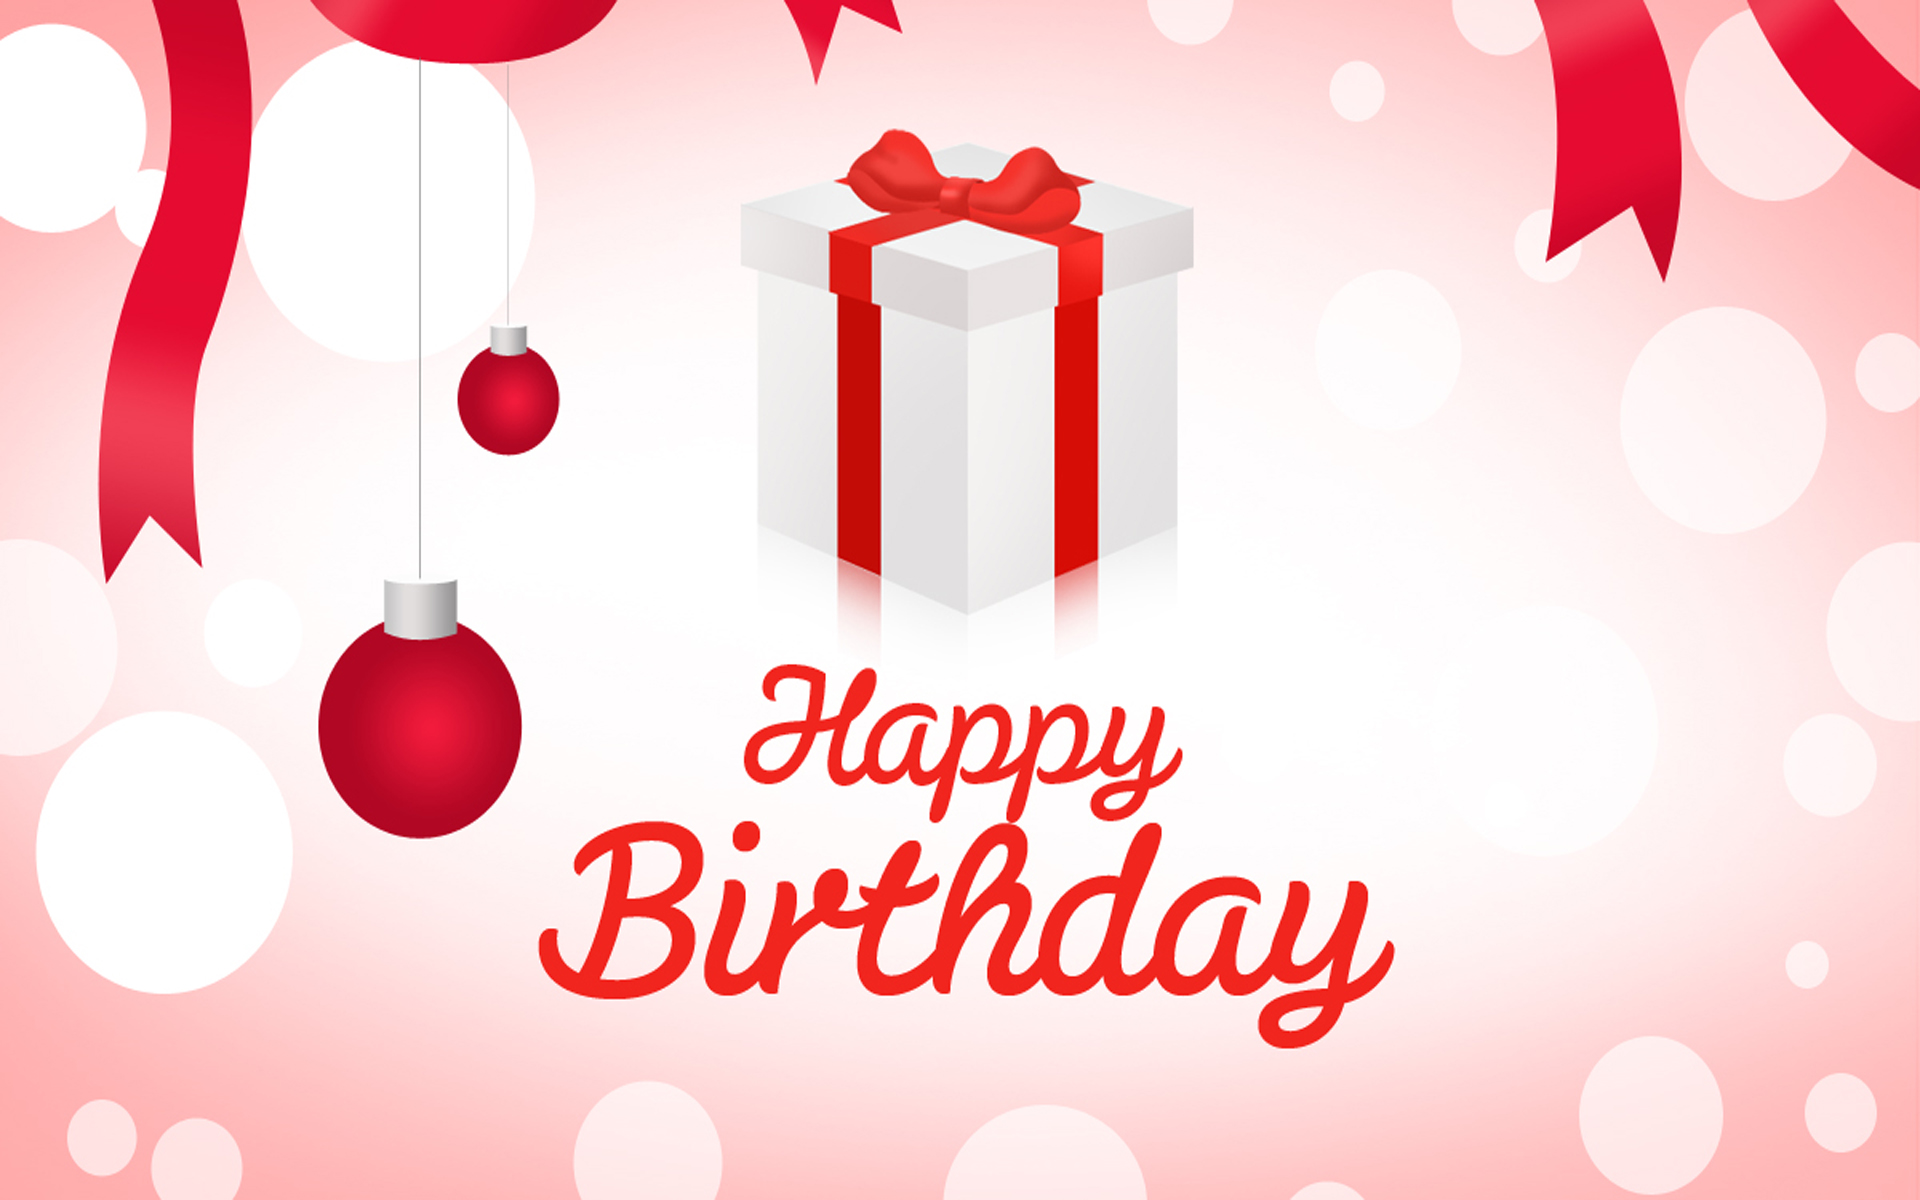 10 Best Happy Birthday Wishes With Images Quotes Square